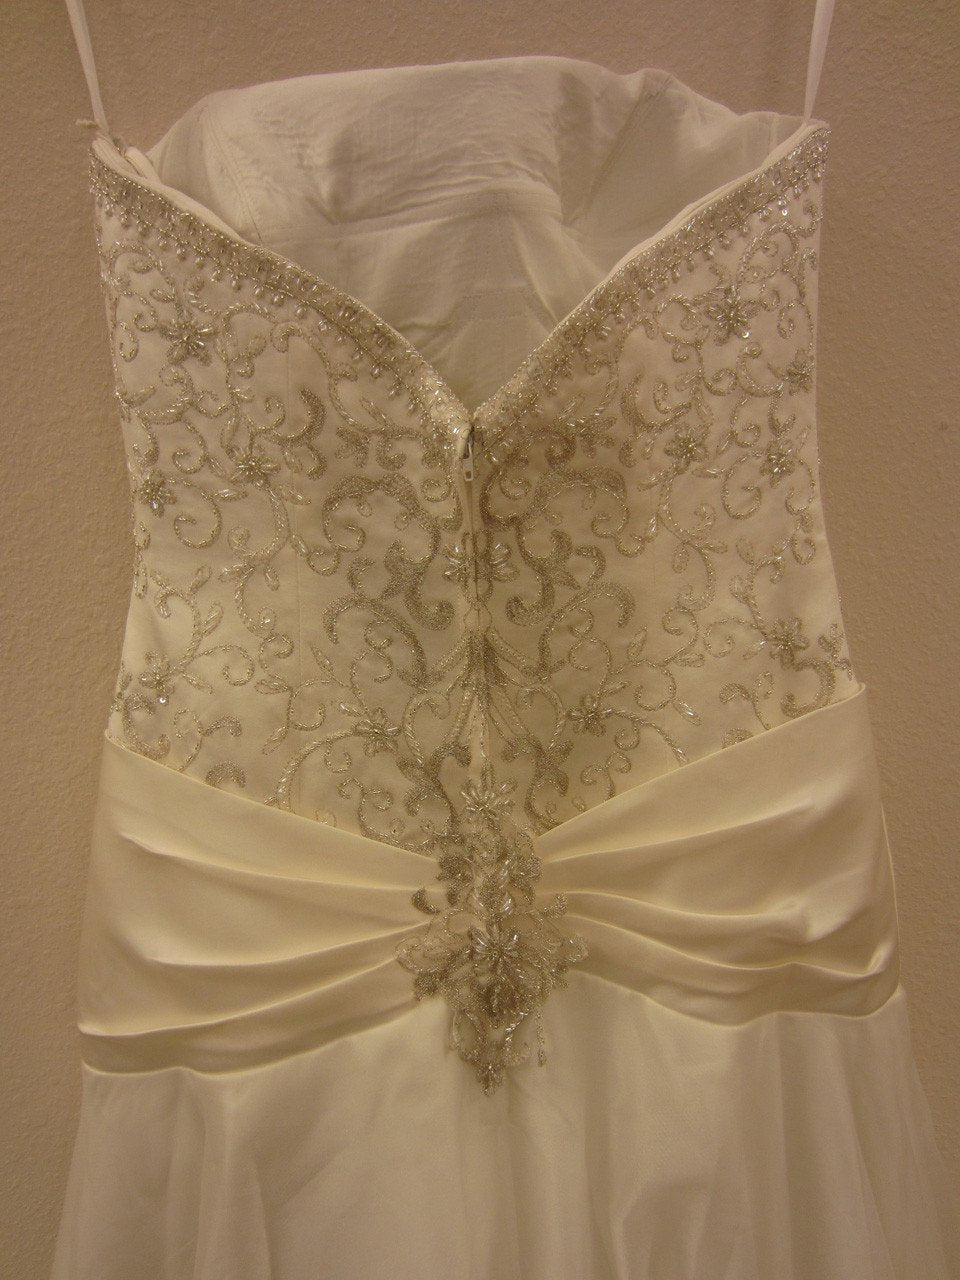 Allure 8362 Ivory/Silver size 10 In Stock Wedding Dress - Tom's Bridal